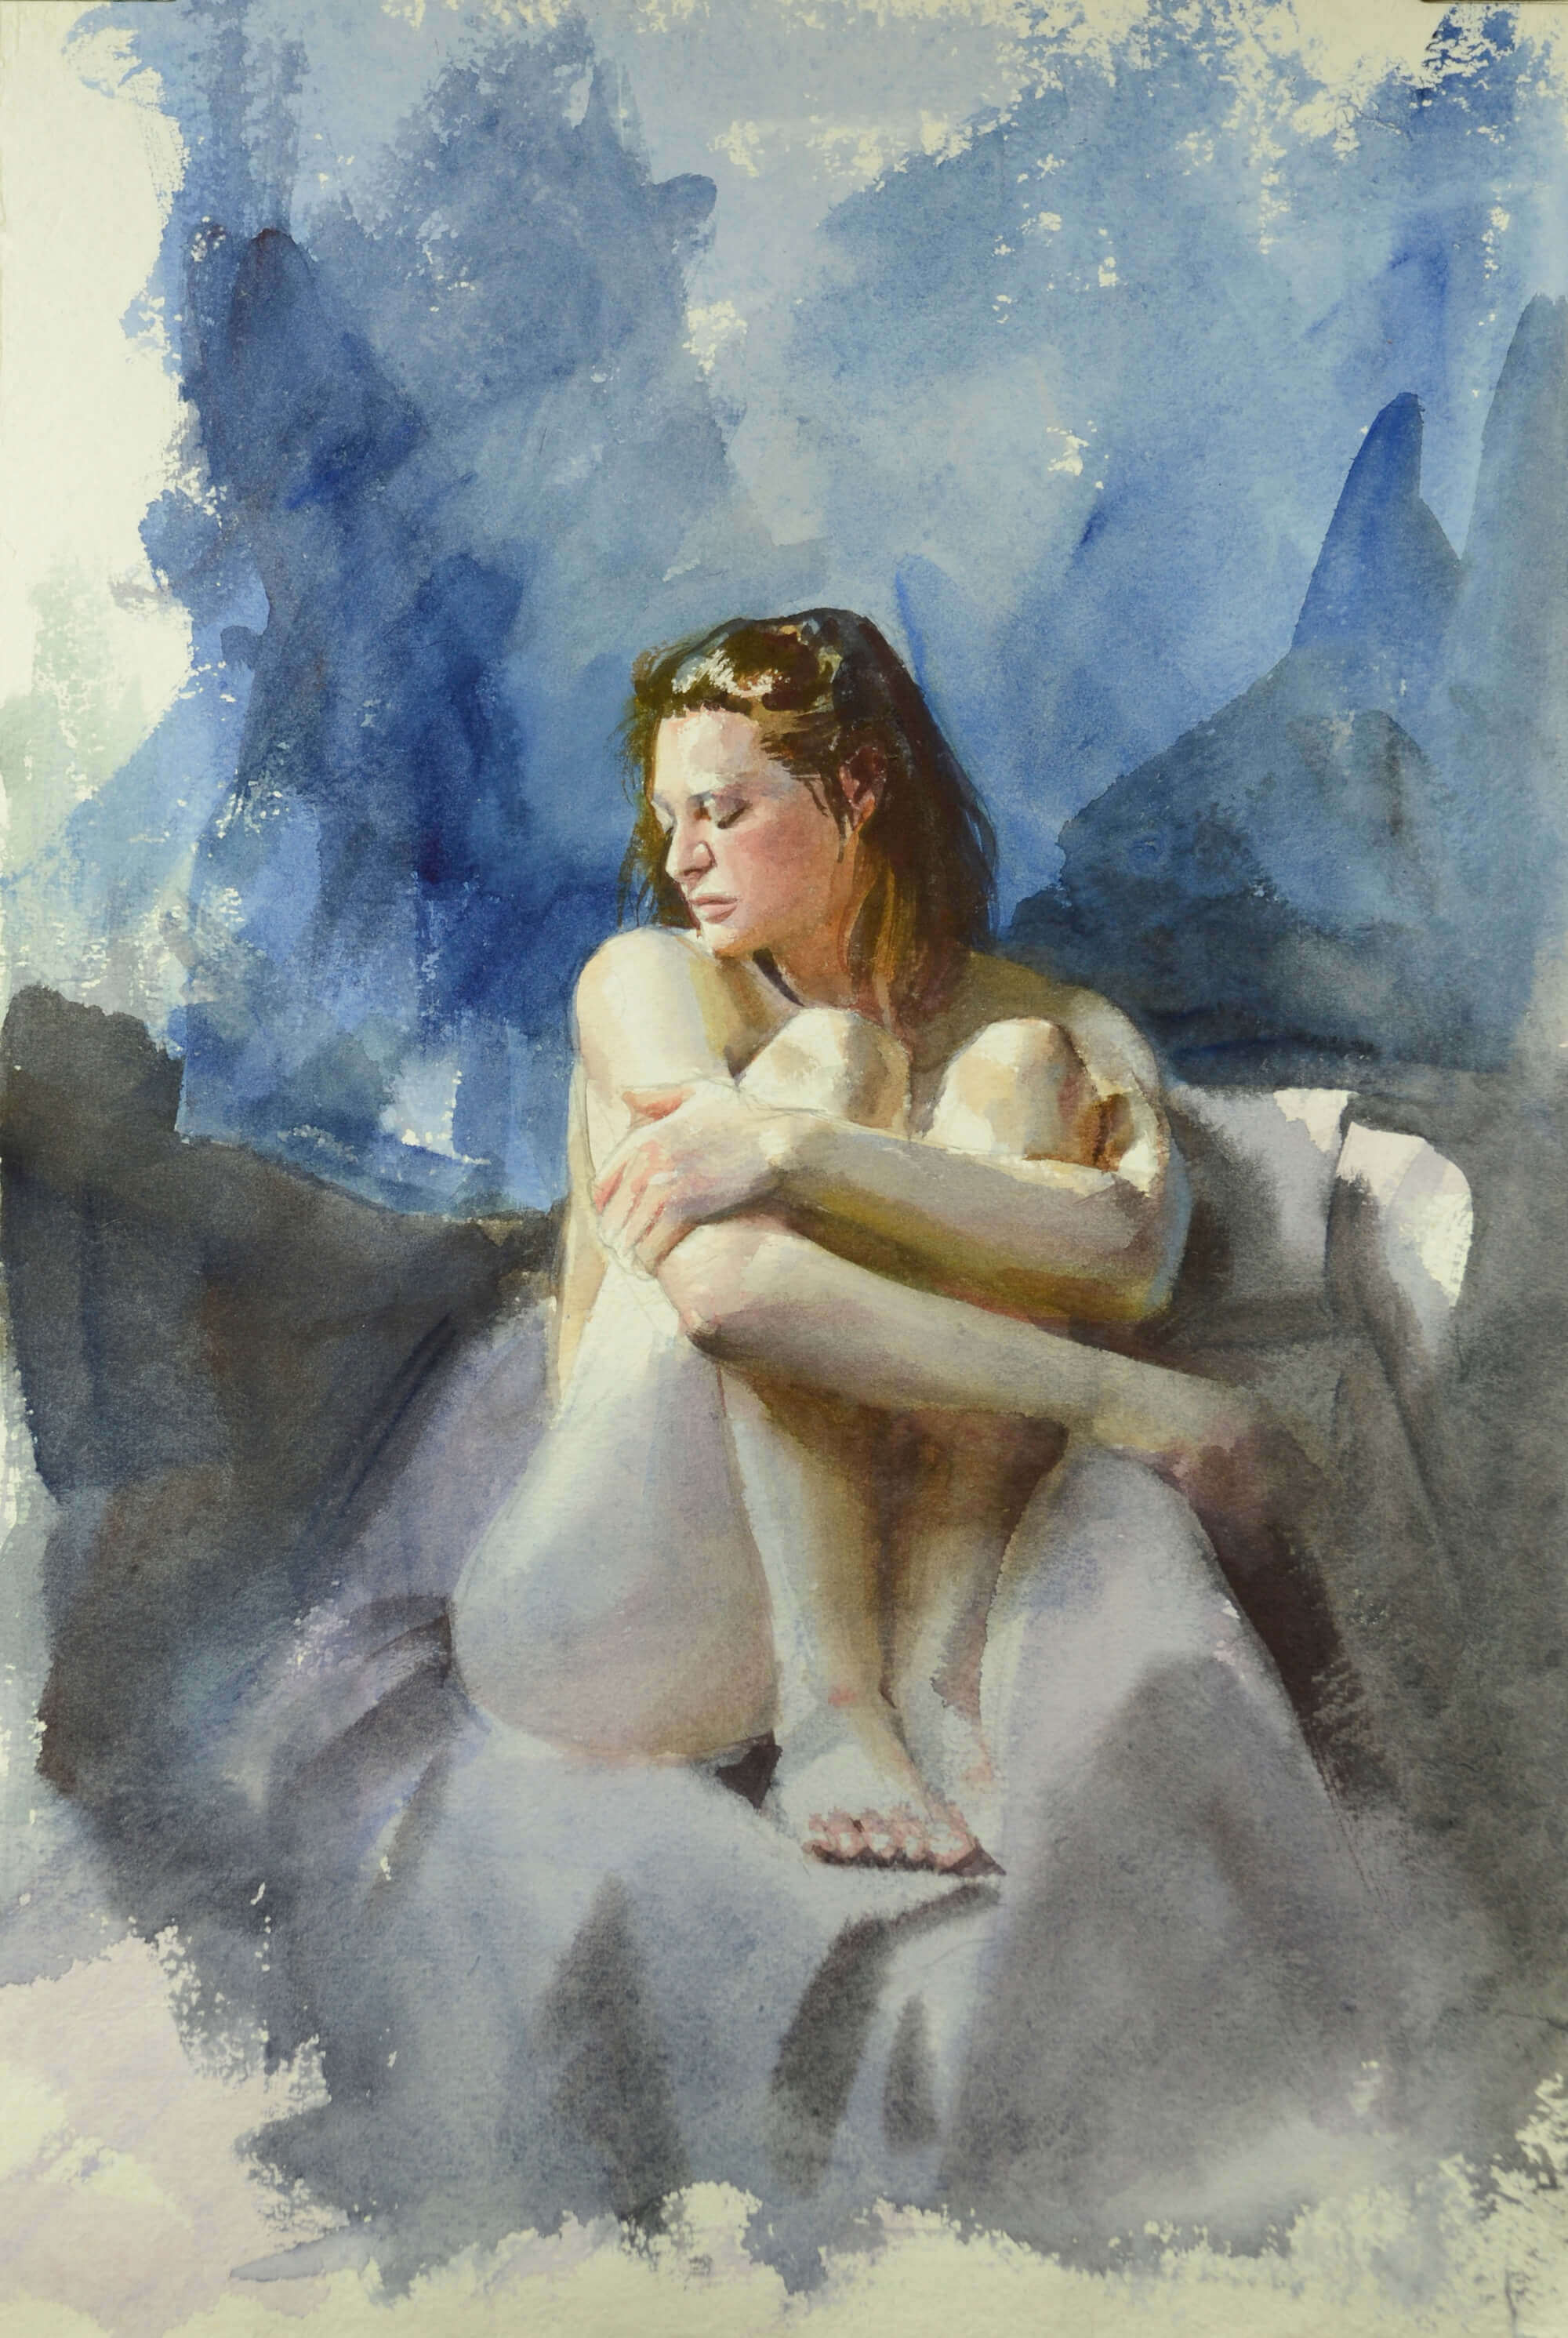 Figurative watercolor paining of a nude woman seated with her arms folded around her knees